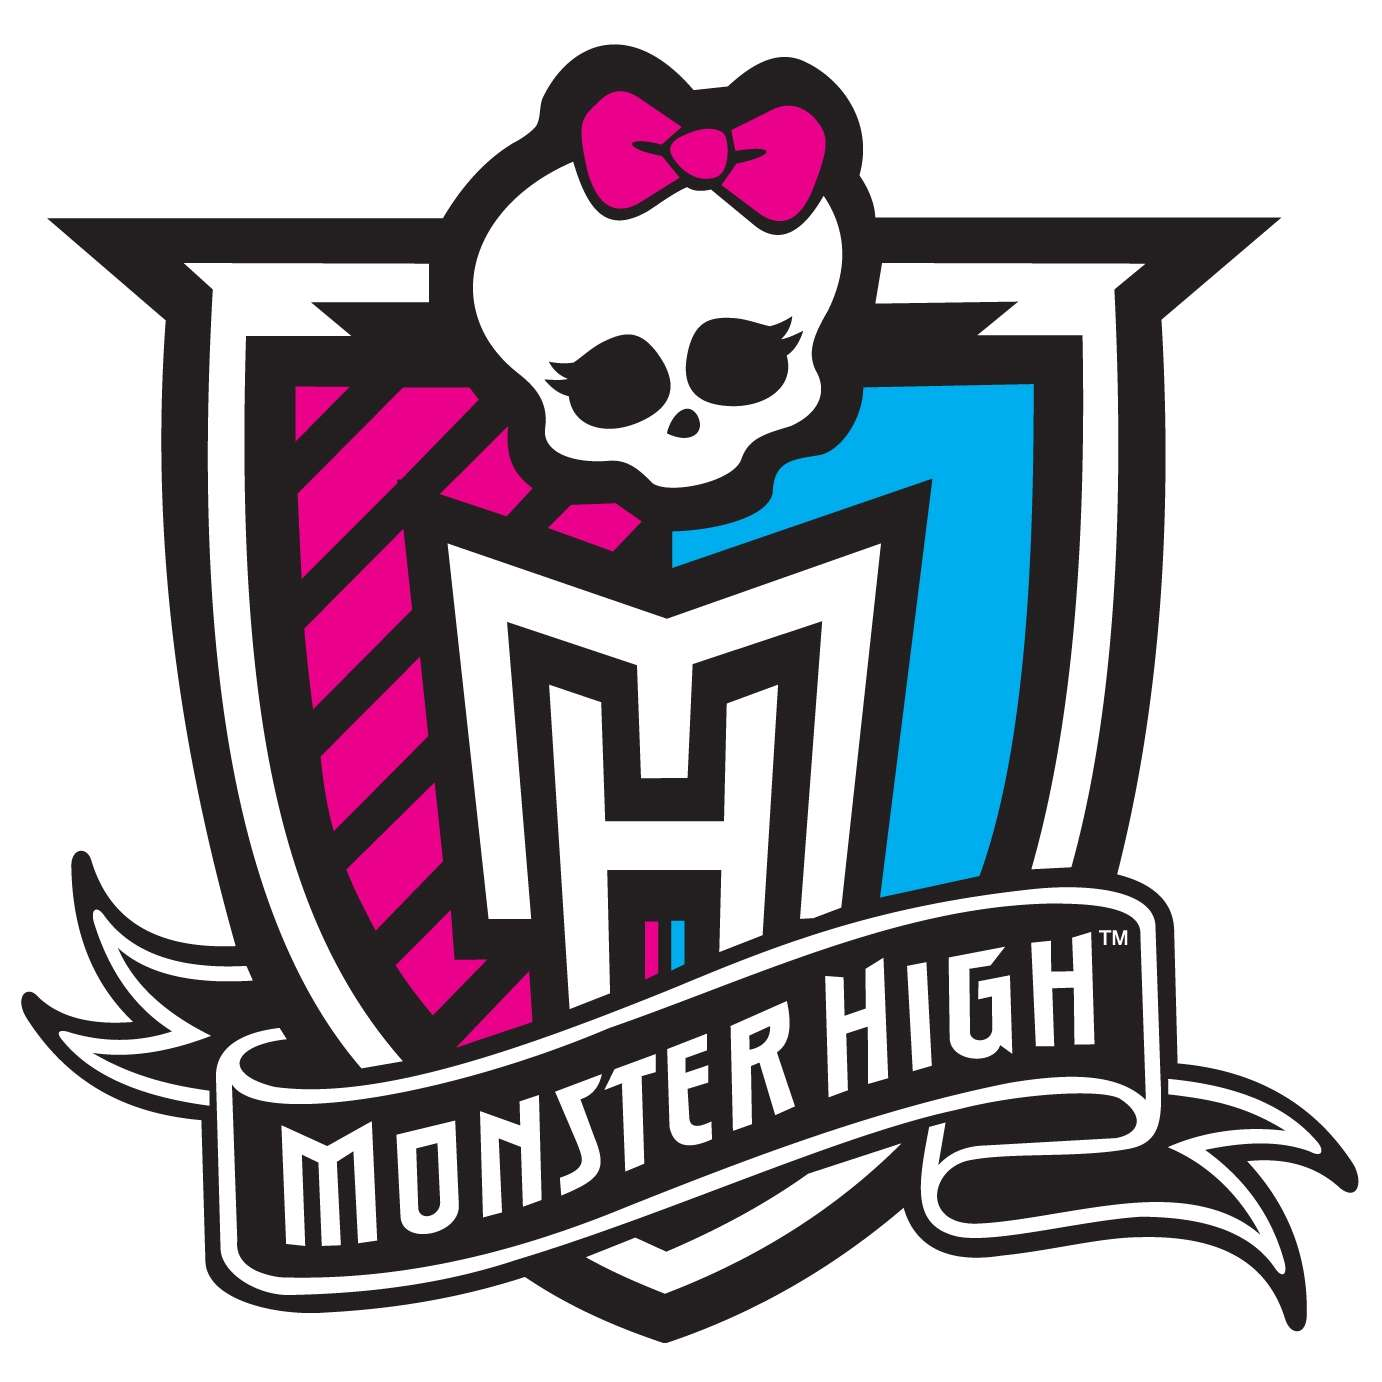 Monster high logo pdf vector eps free download logo icons clipart monster high logo biocorpaavc